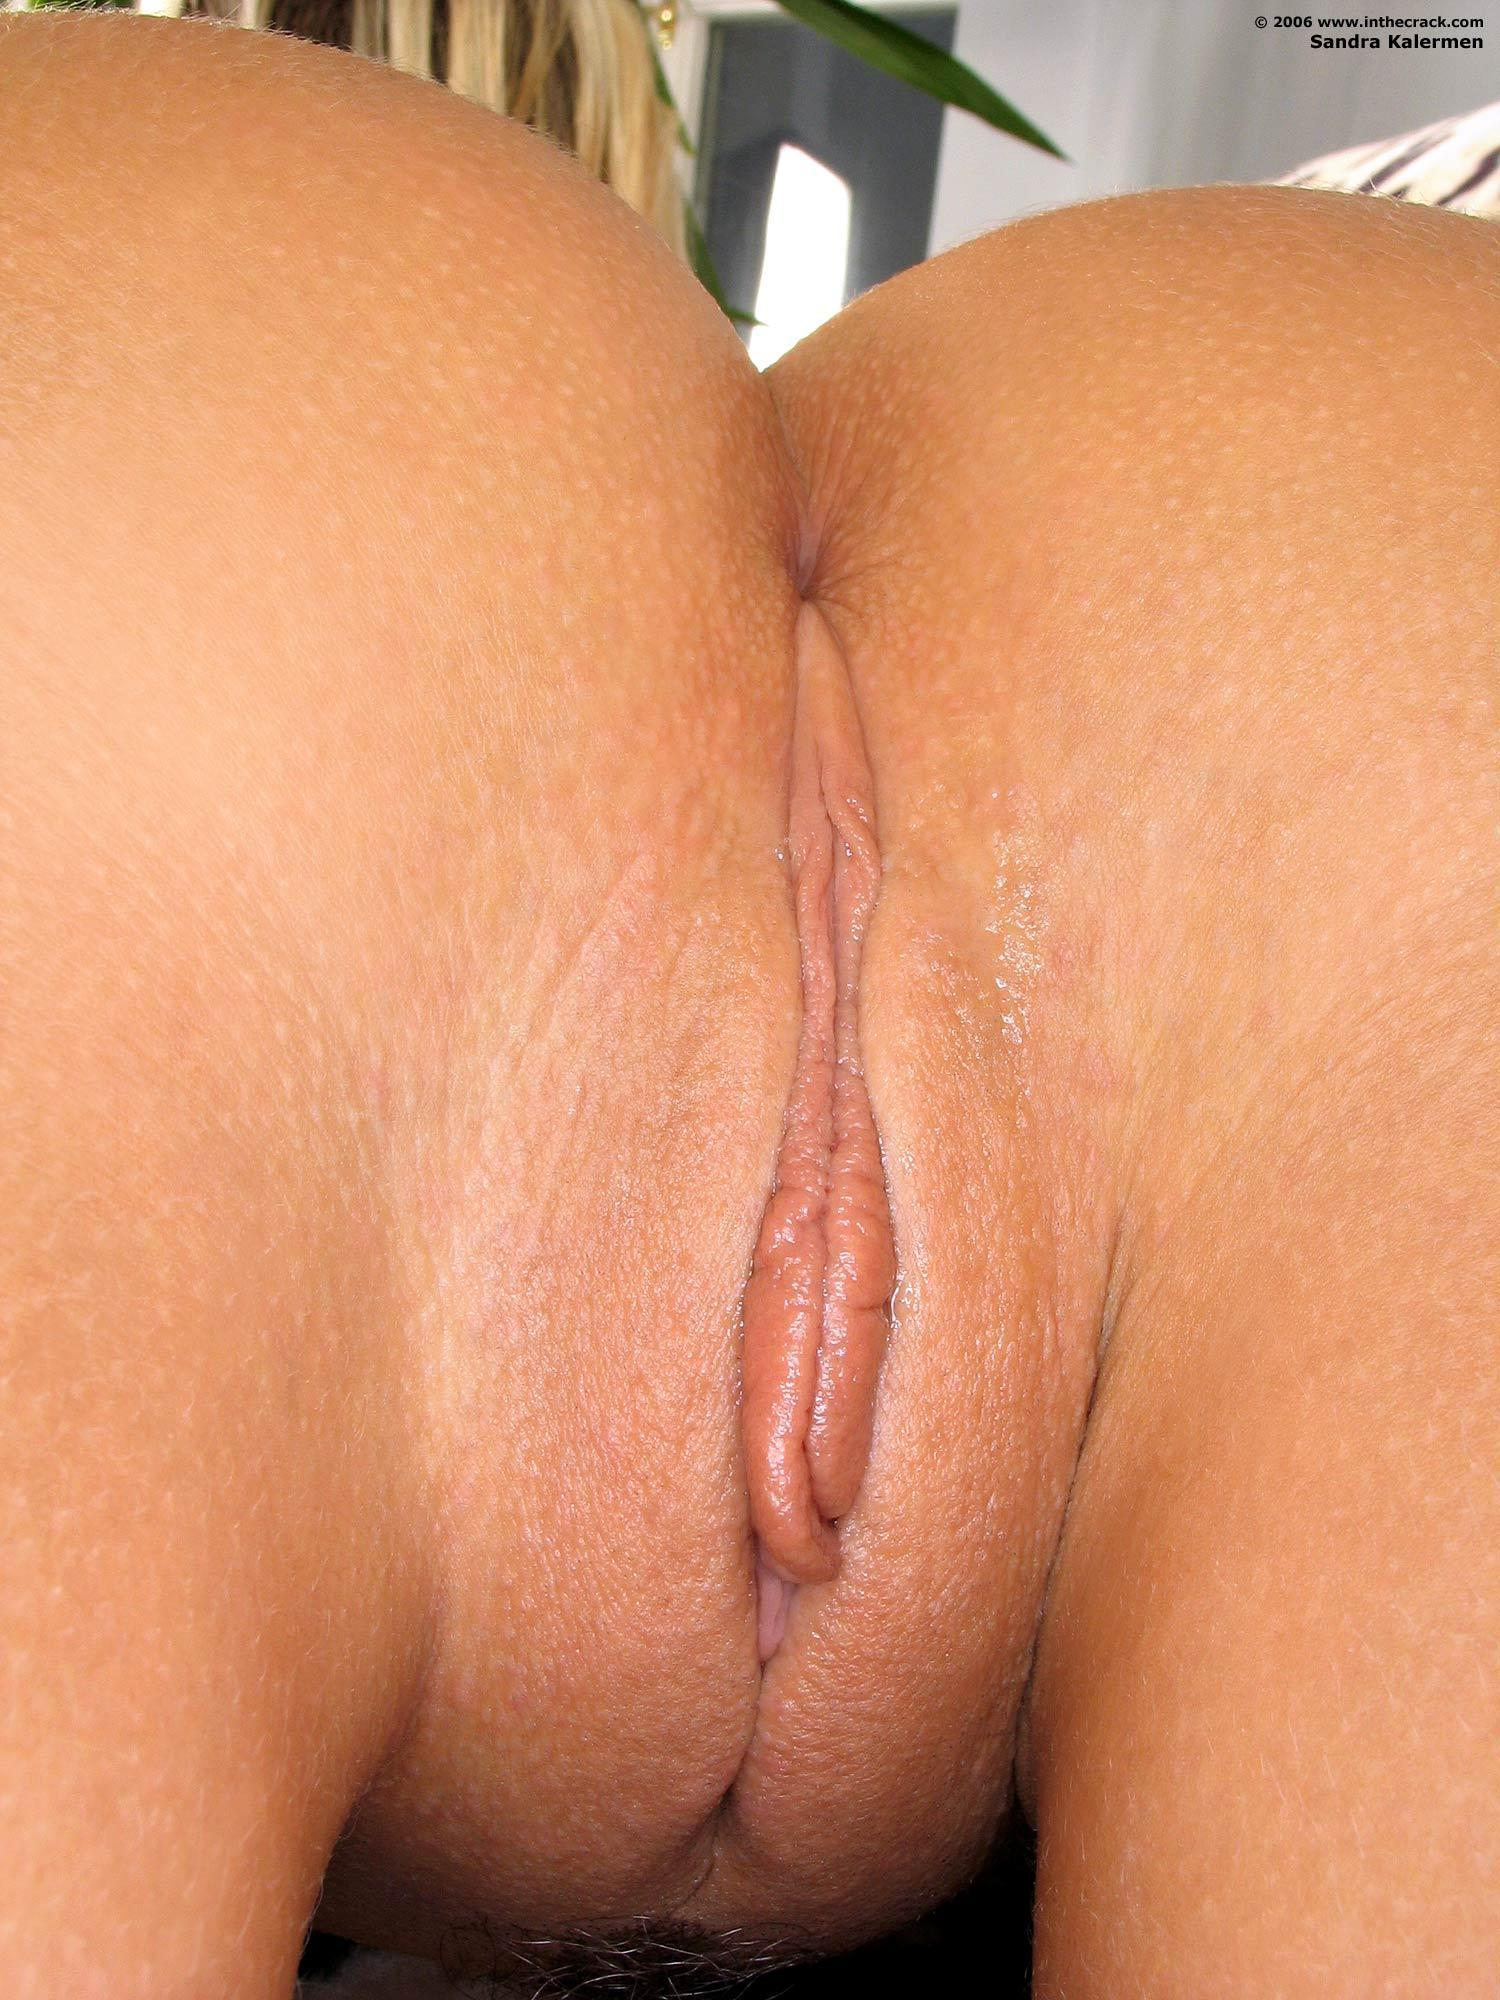 pussy-zoom-close-up-vagina-mix-vol10-97